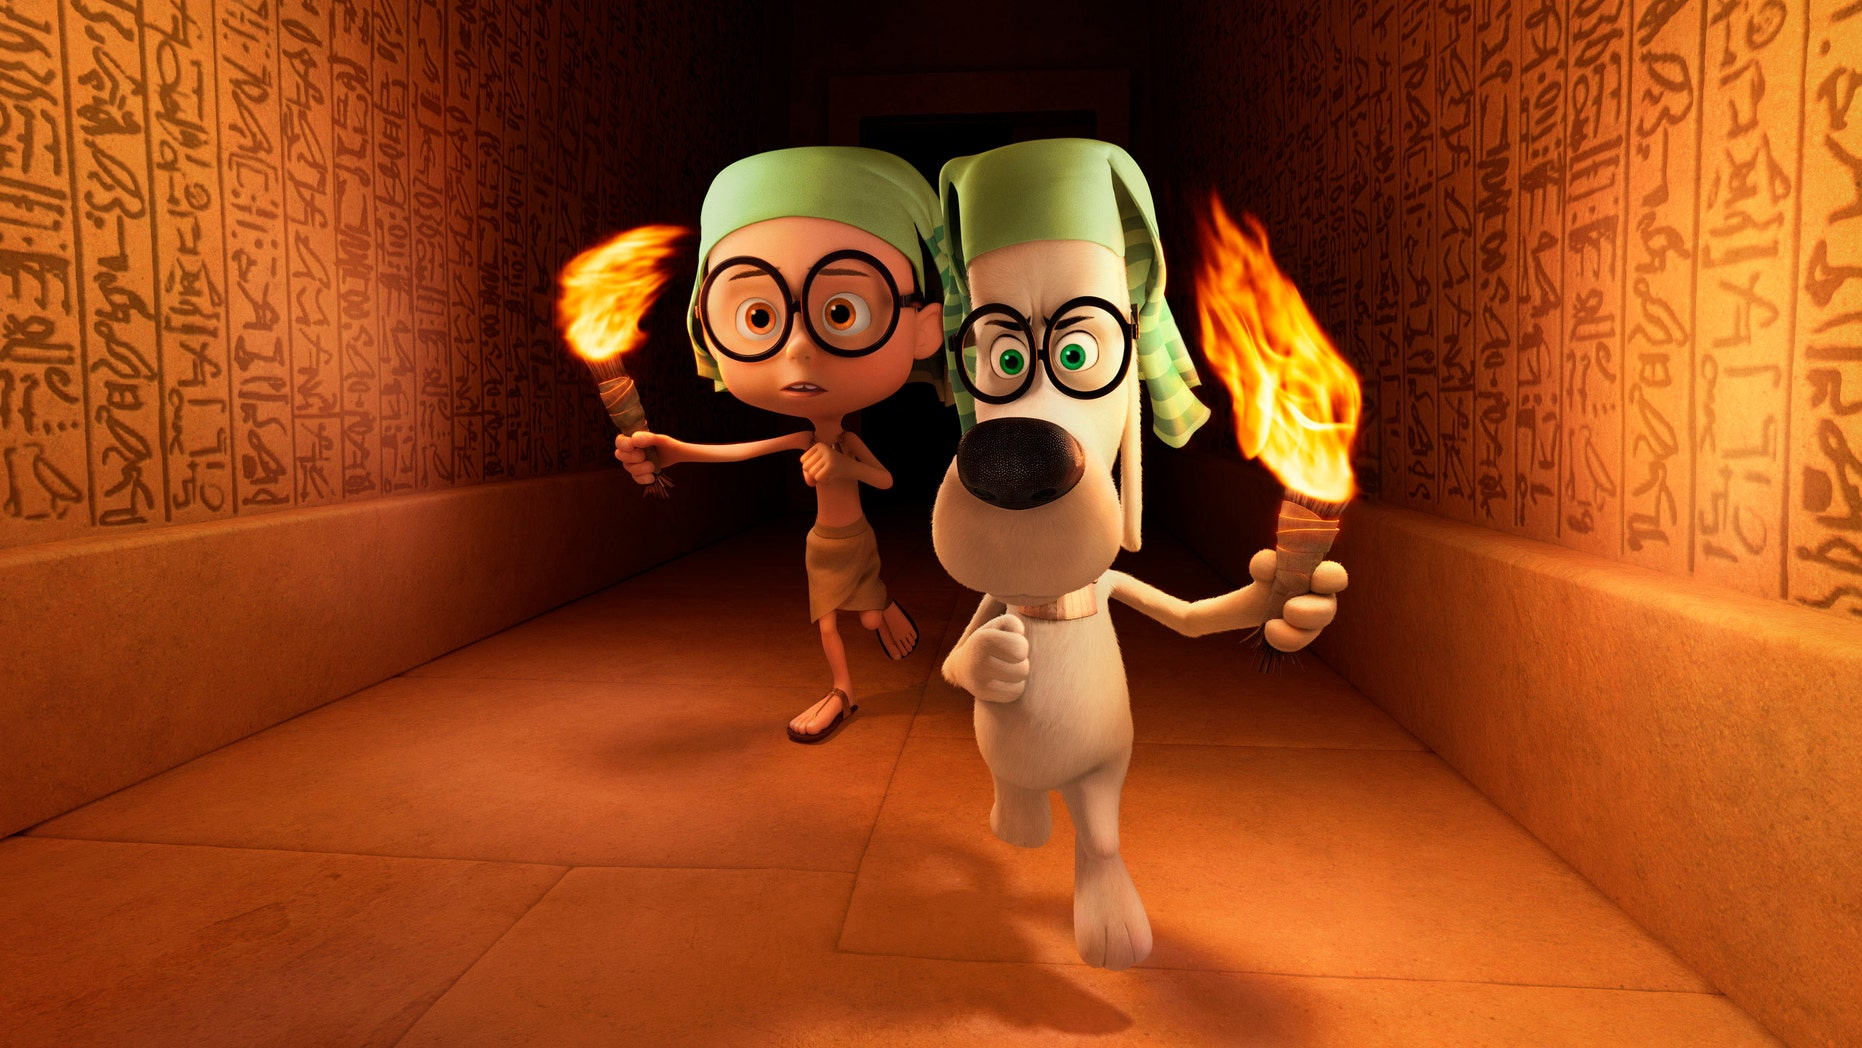 """Sherman, voiced by Max Charles, left, and Mr. Peabody, voiced by Ty Burell, in a scene from the animated film, """"Mr. Peabody & Sherman."""""""